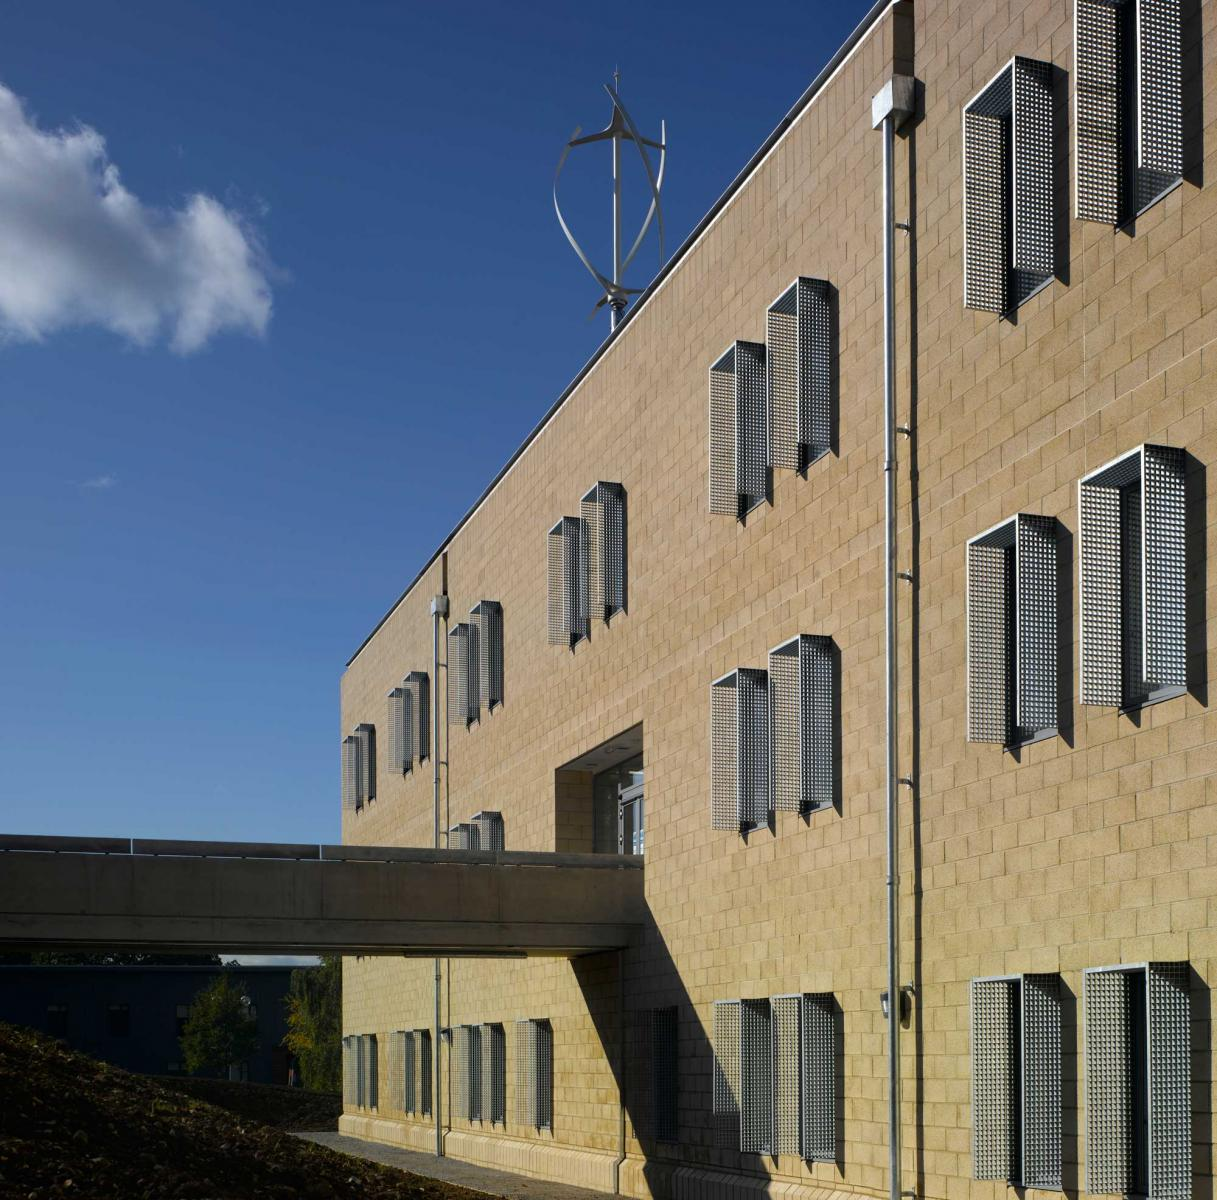 Health & Human Sciences Essex University - Exterior view of link bridge